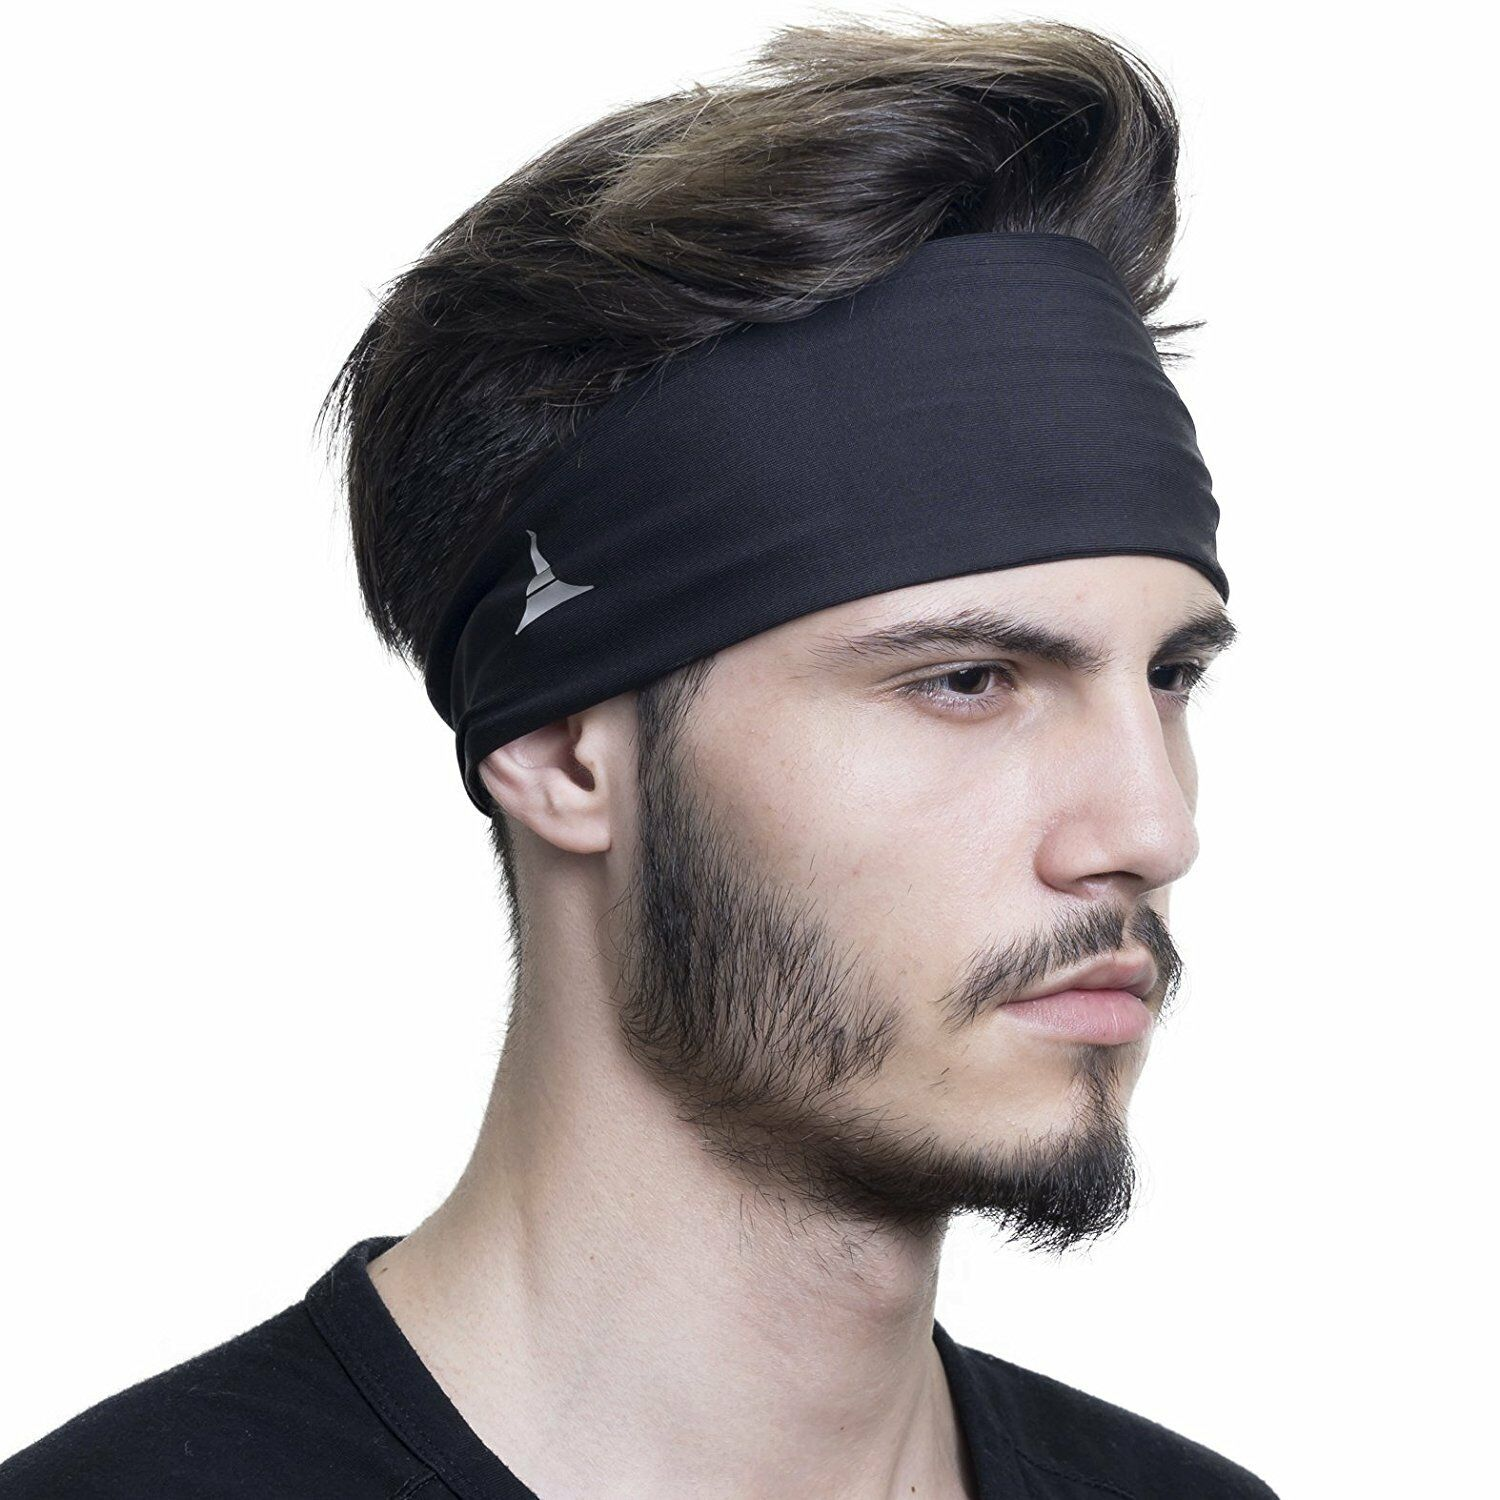 Elimoons 2-Layer Mens Headband 4 Pack Non Slip Sweatband Running Sports Headband for Men//Women Training Basketball Hairband Performance Stretch /& Moisture Wicking for Workout,Yoga,Gym,Bike